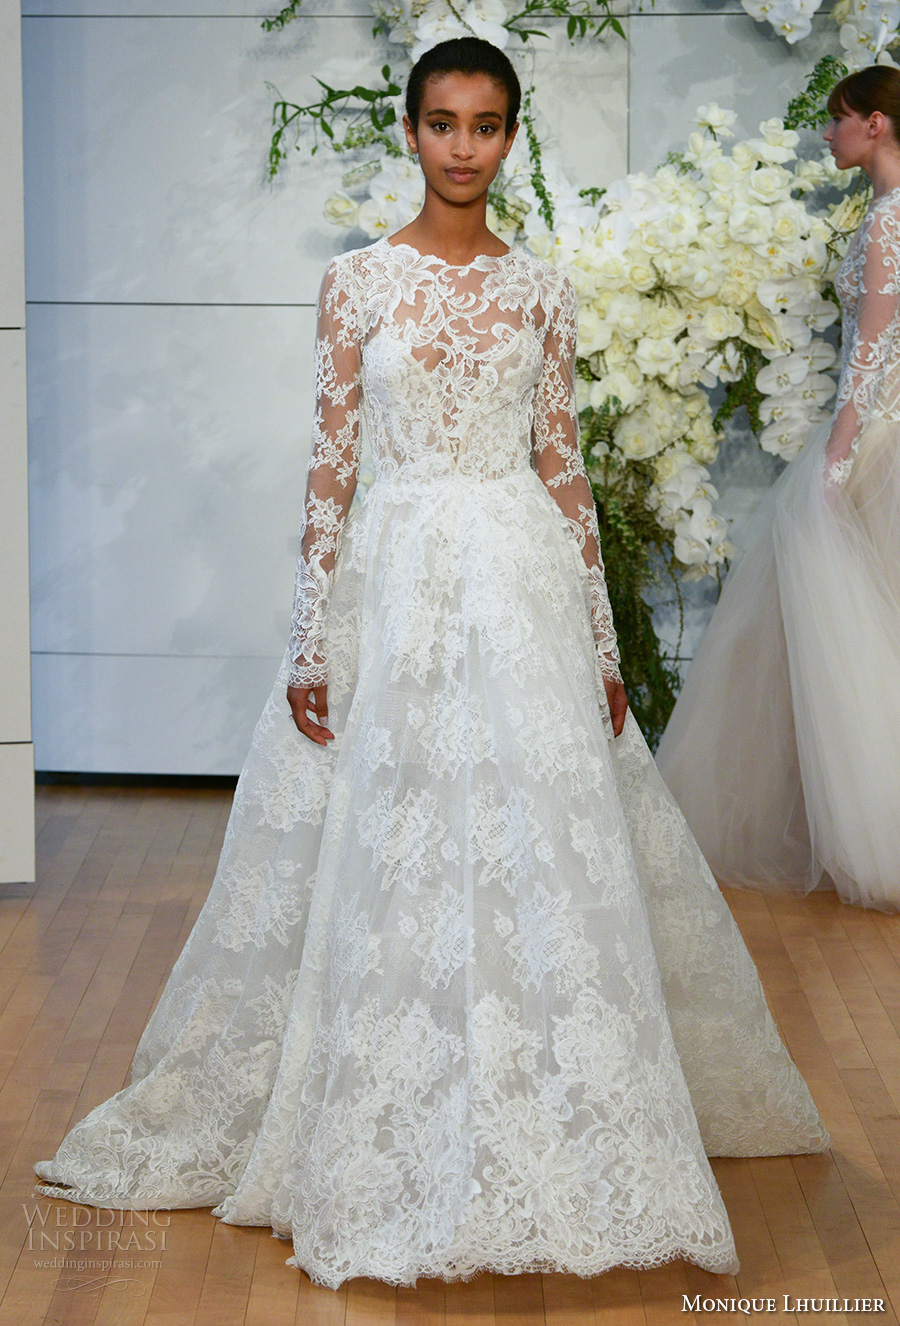 Monique lhuillier spring 2018 wedding dresses new york for Price of monique lhuillier wedding dresses